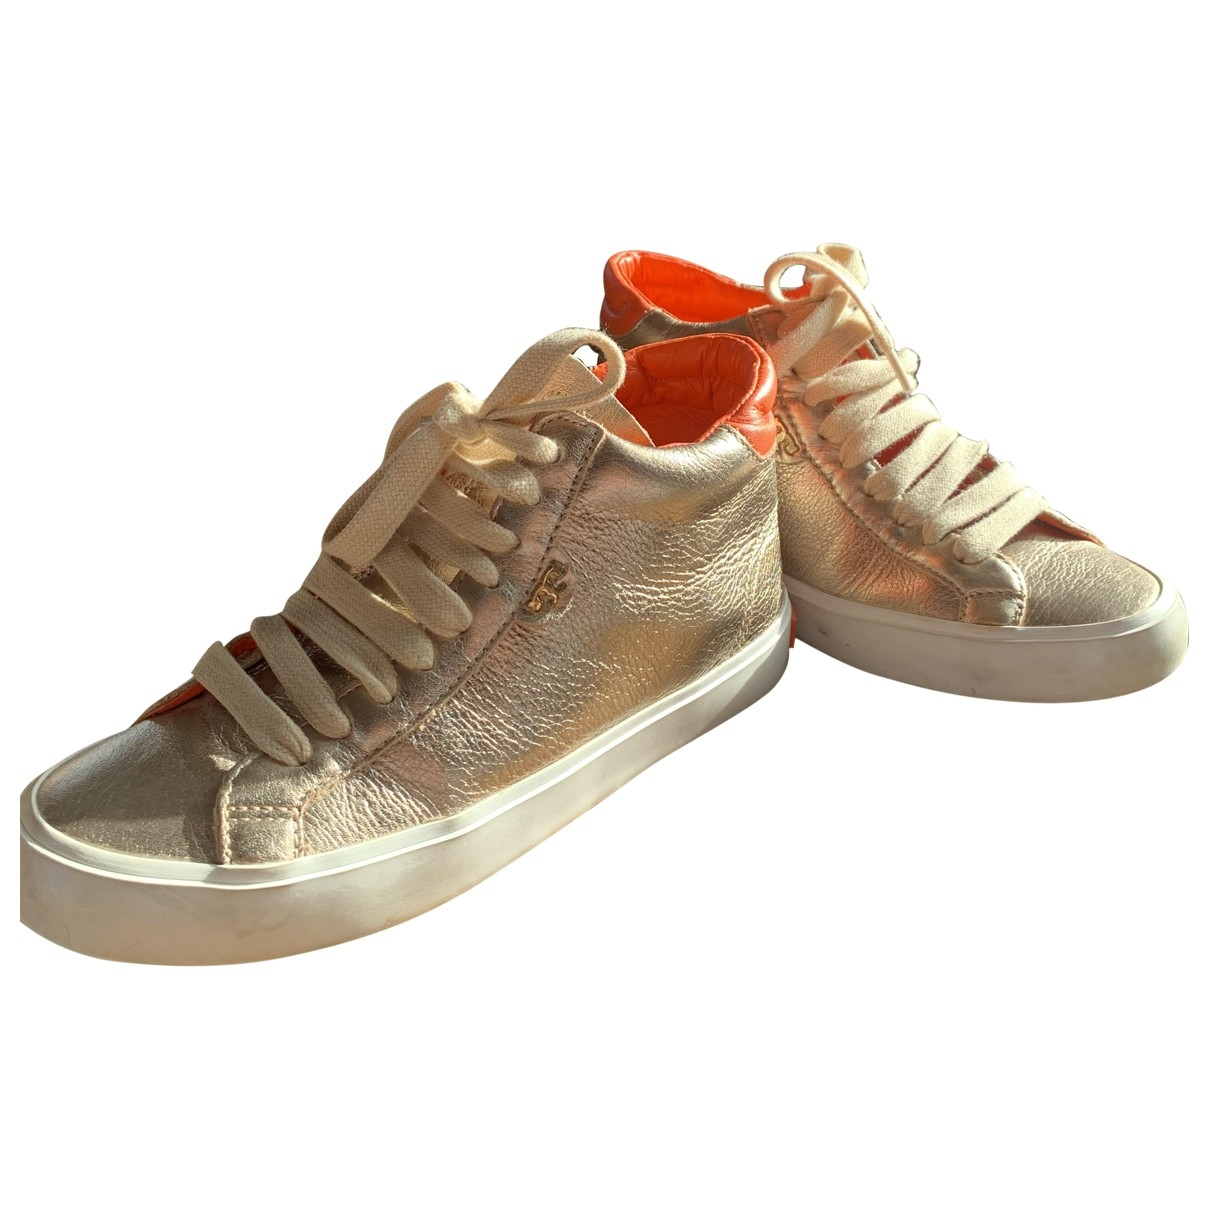 Tory Burch \N Gold Leather Trainers for Women 37.5 EU